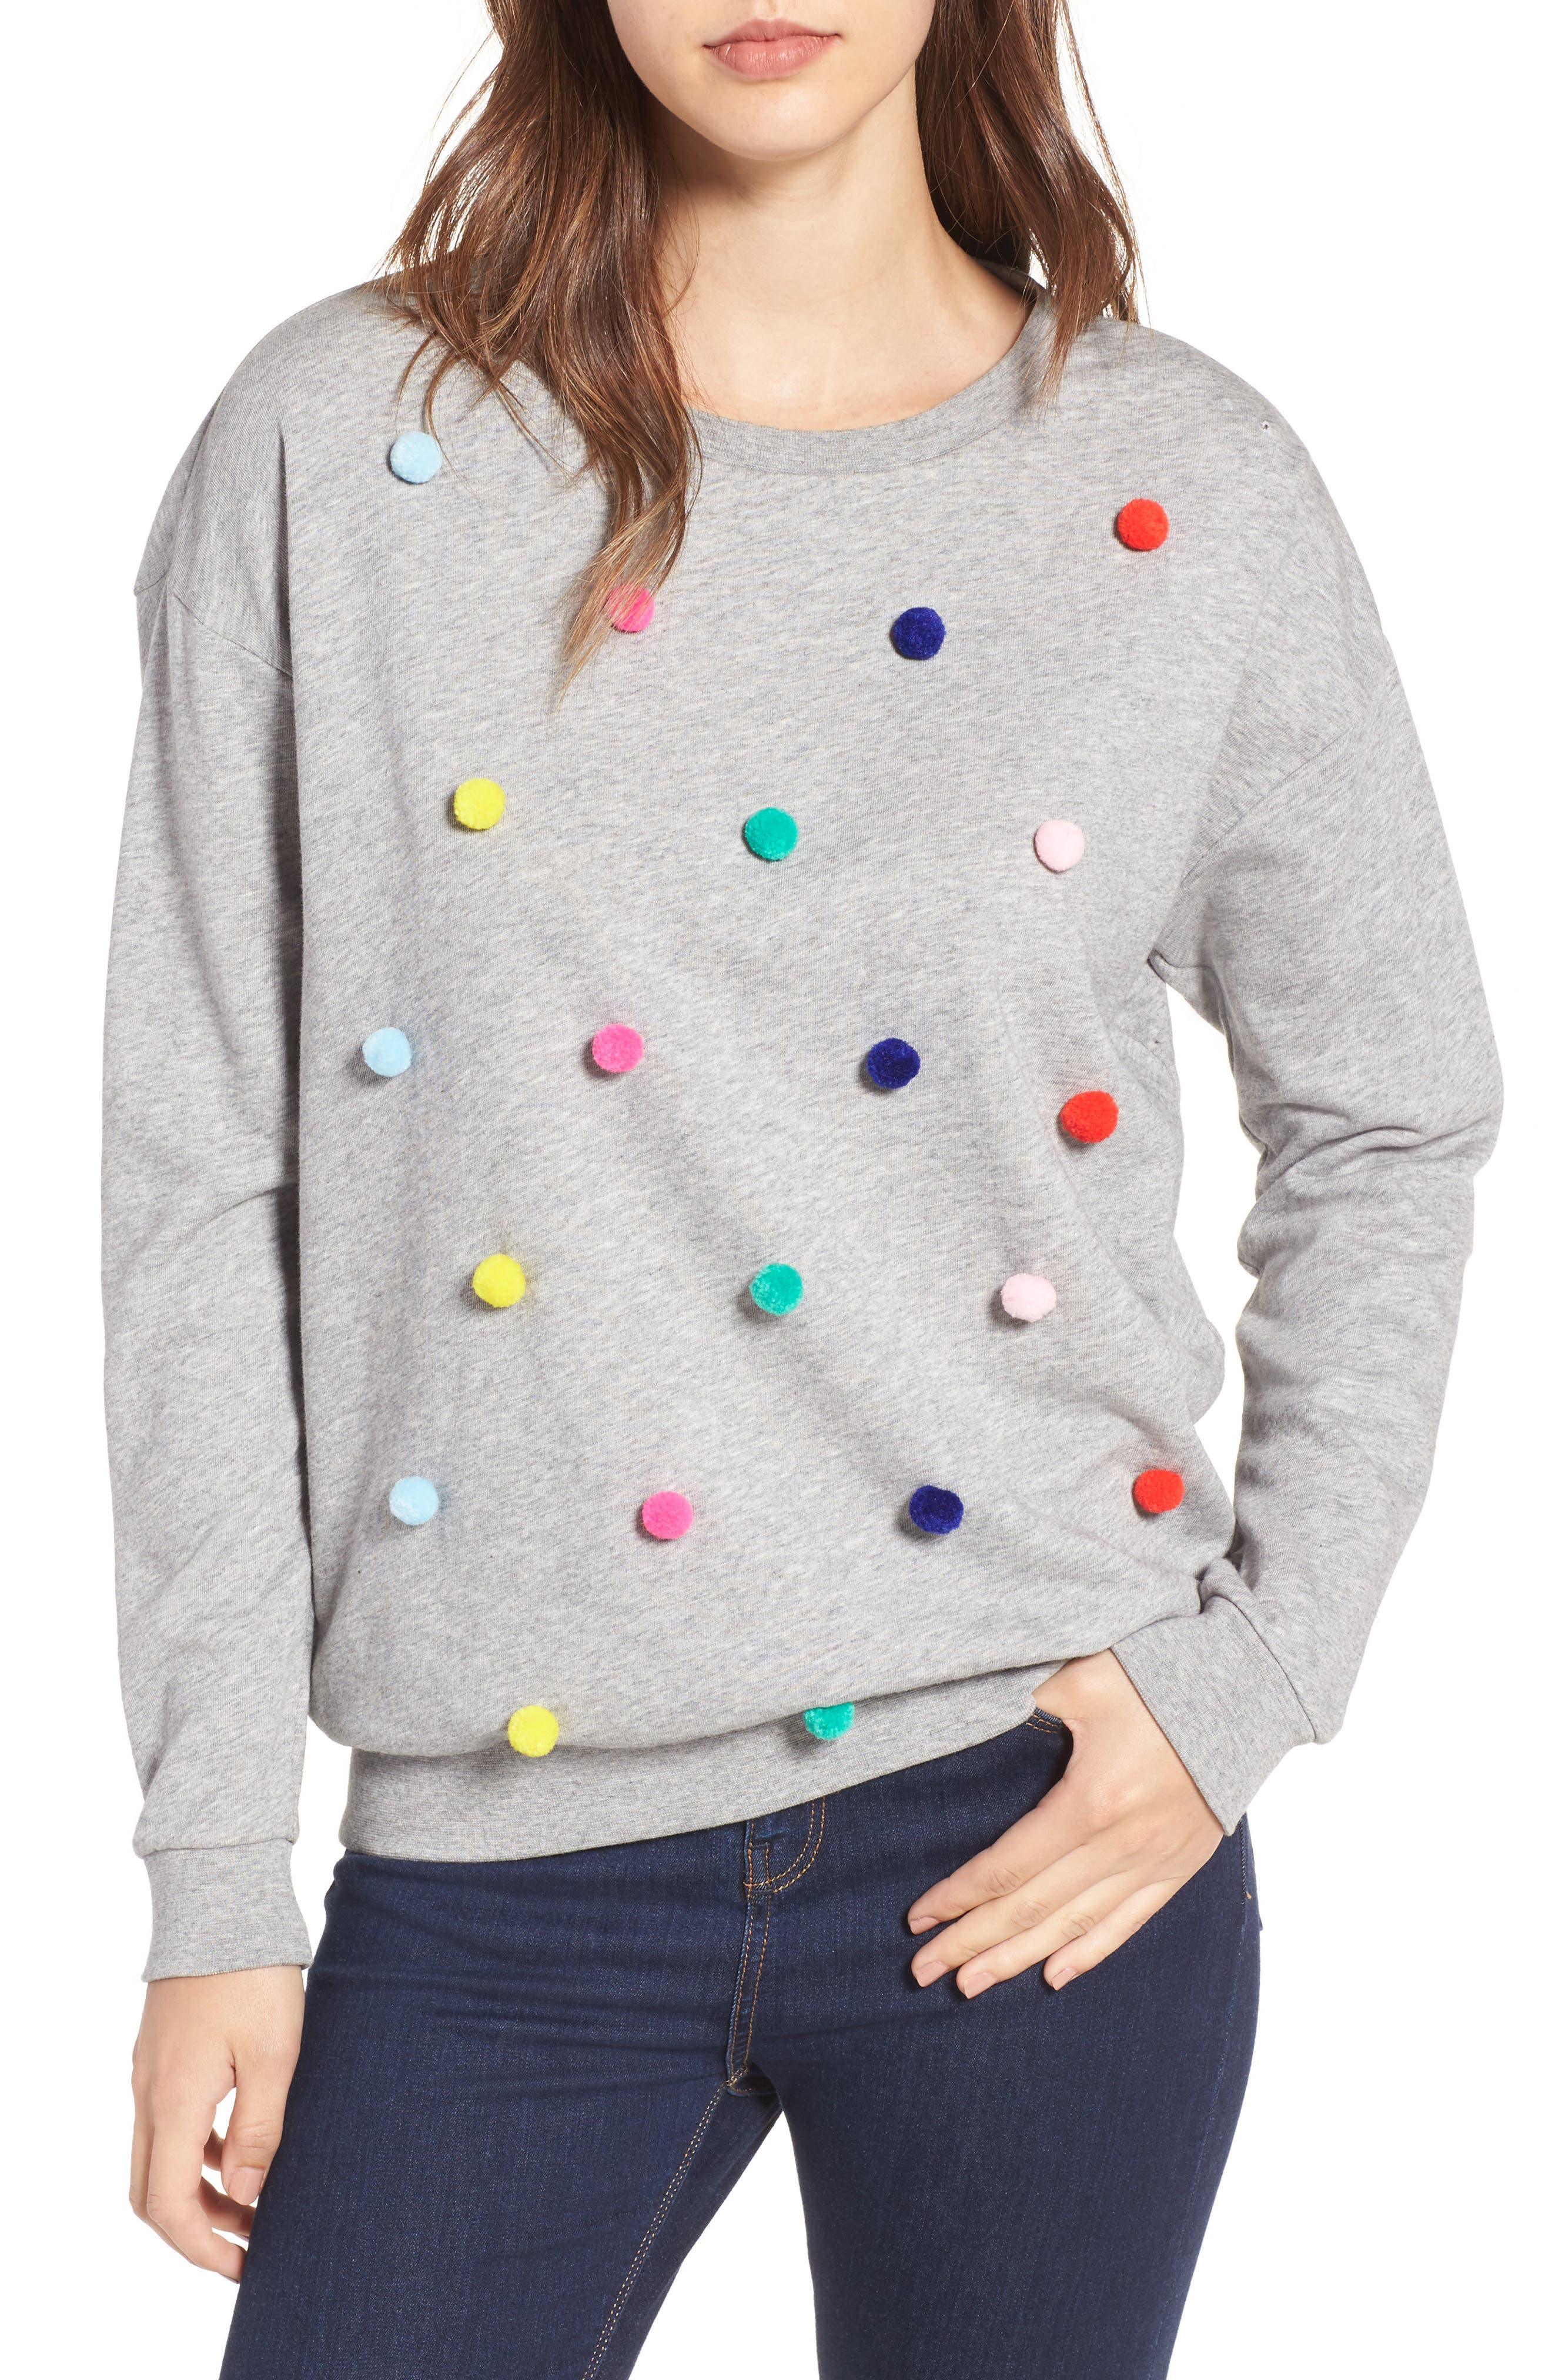 South Parade Pompom Sweatshirt